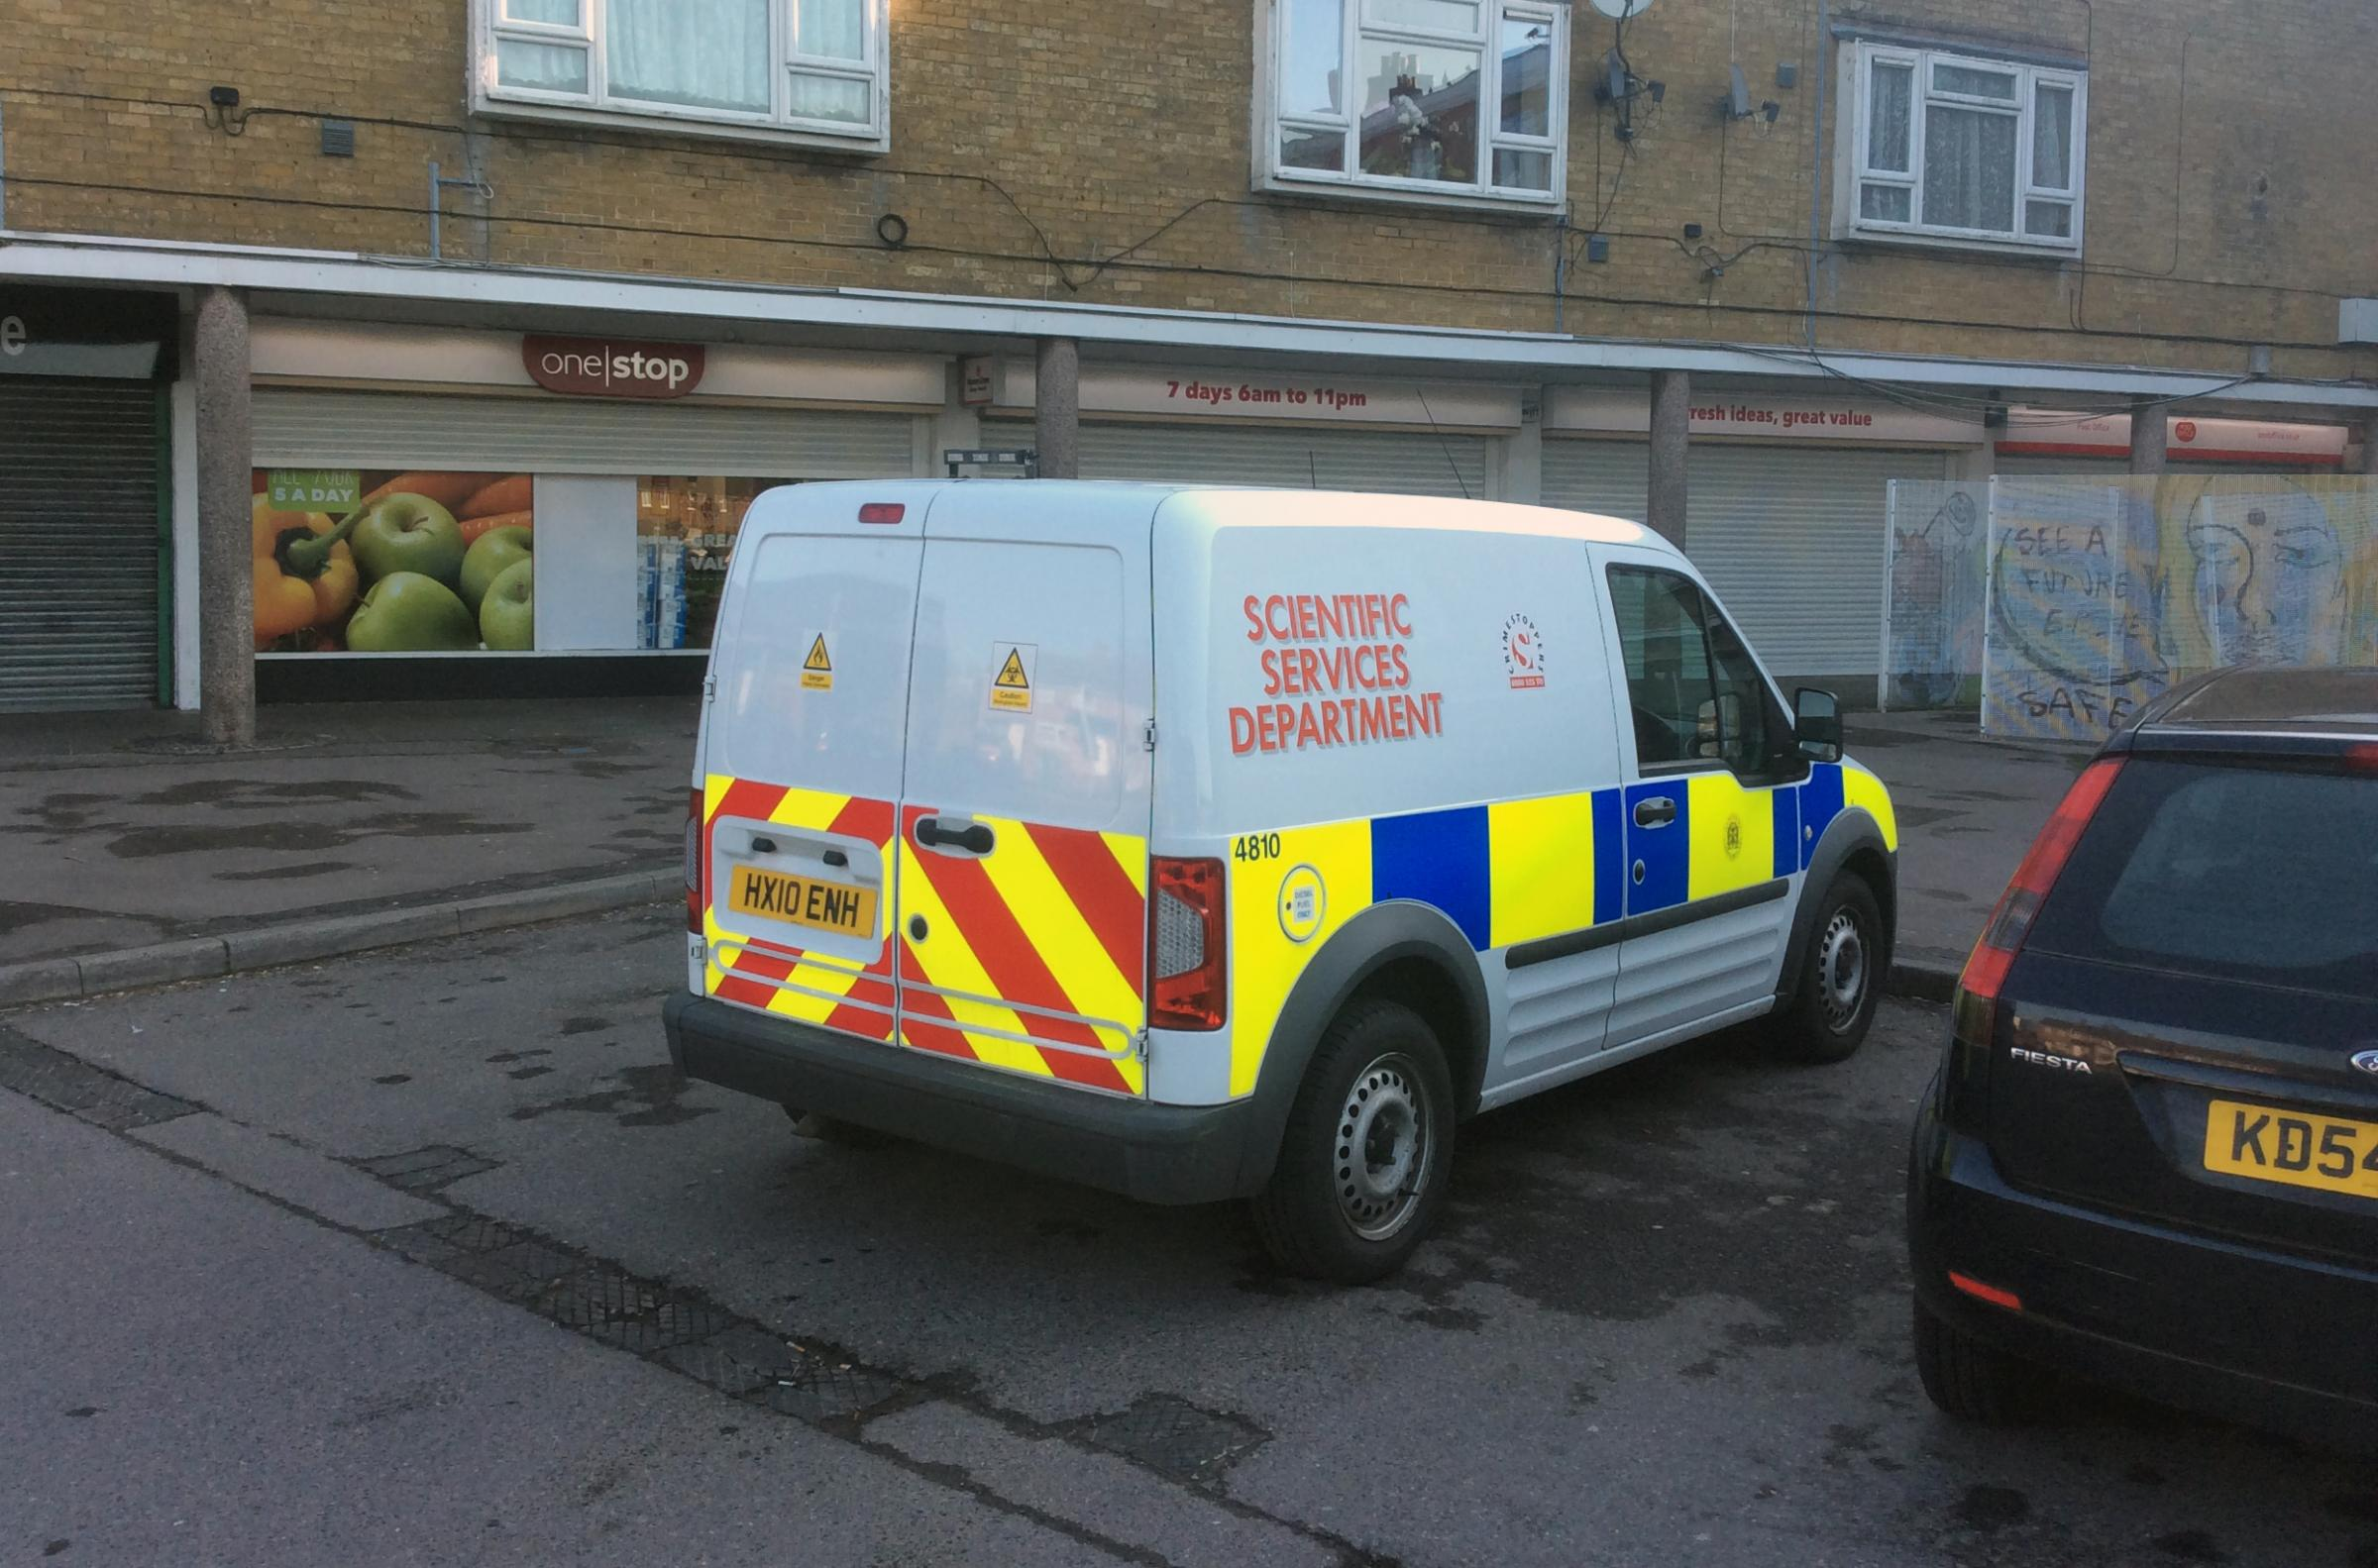 Police at the scene of the incident at One Stop in Kendal Avenue, Millbrook